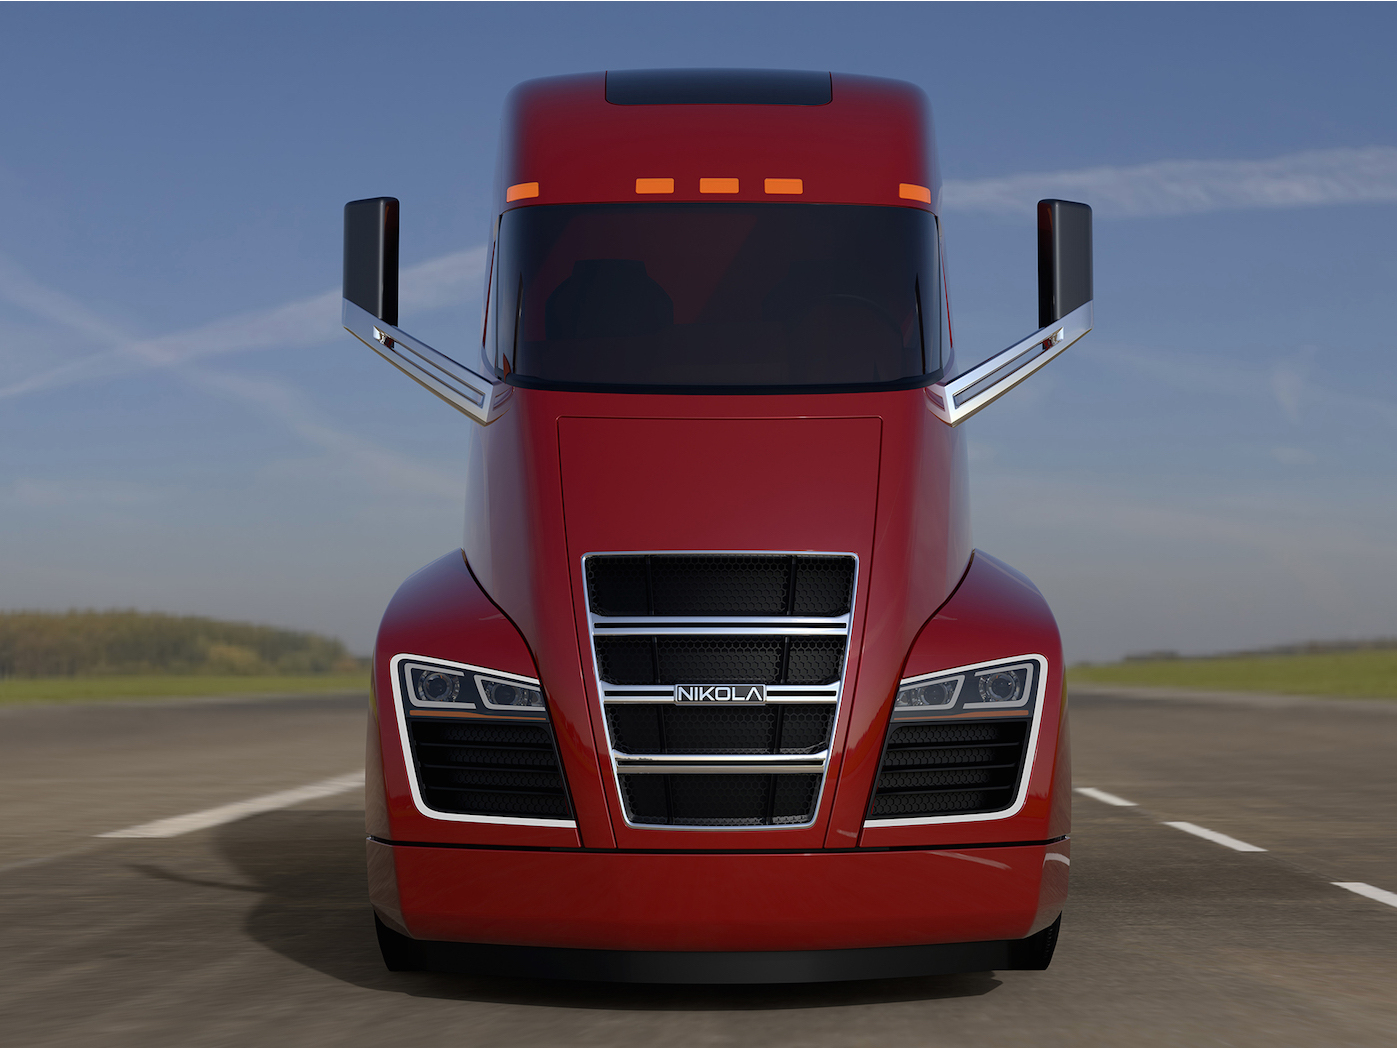 A Startup Trying To Become The Tesla Of Trucking Just Made A Very Strange Move Trucks Tesla Truck Design